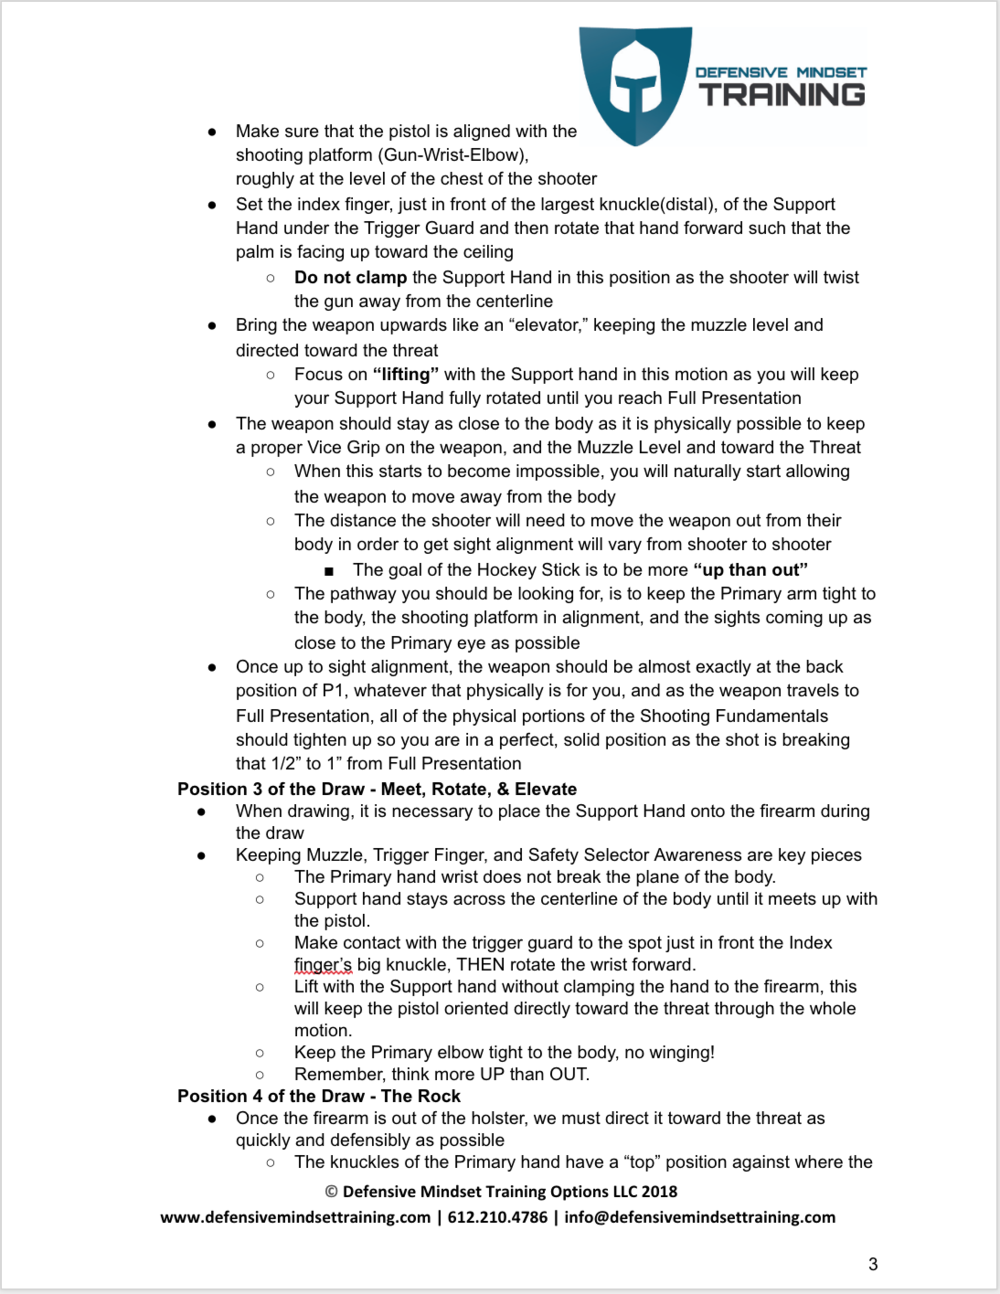 Week 6 Student Guide p 3